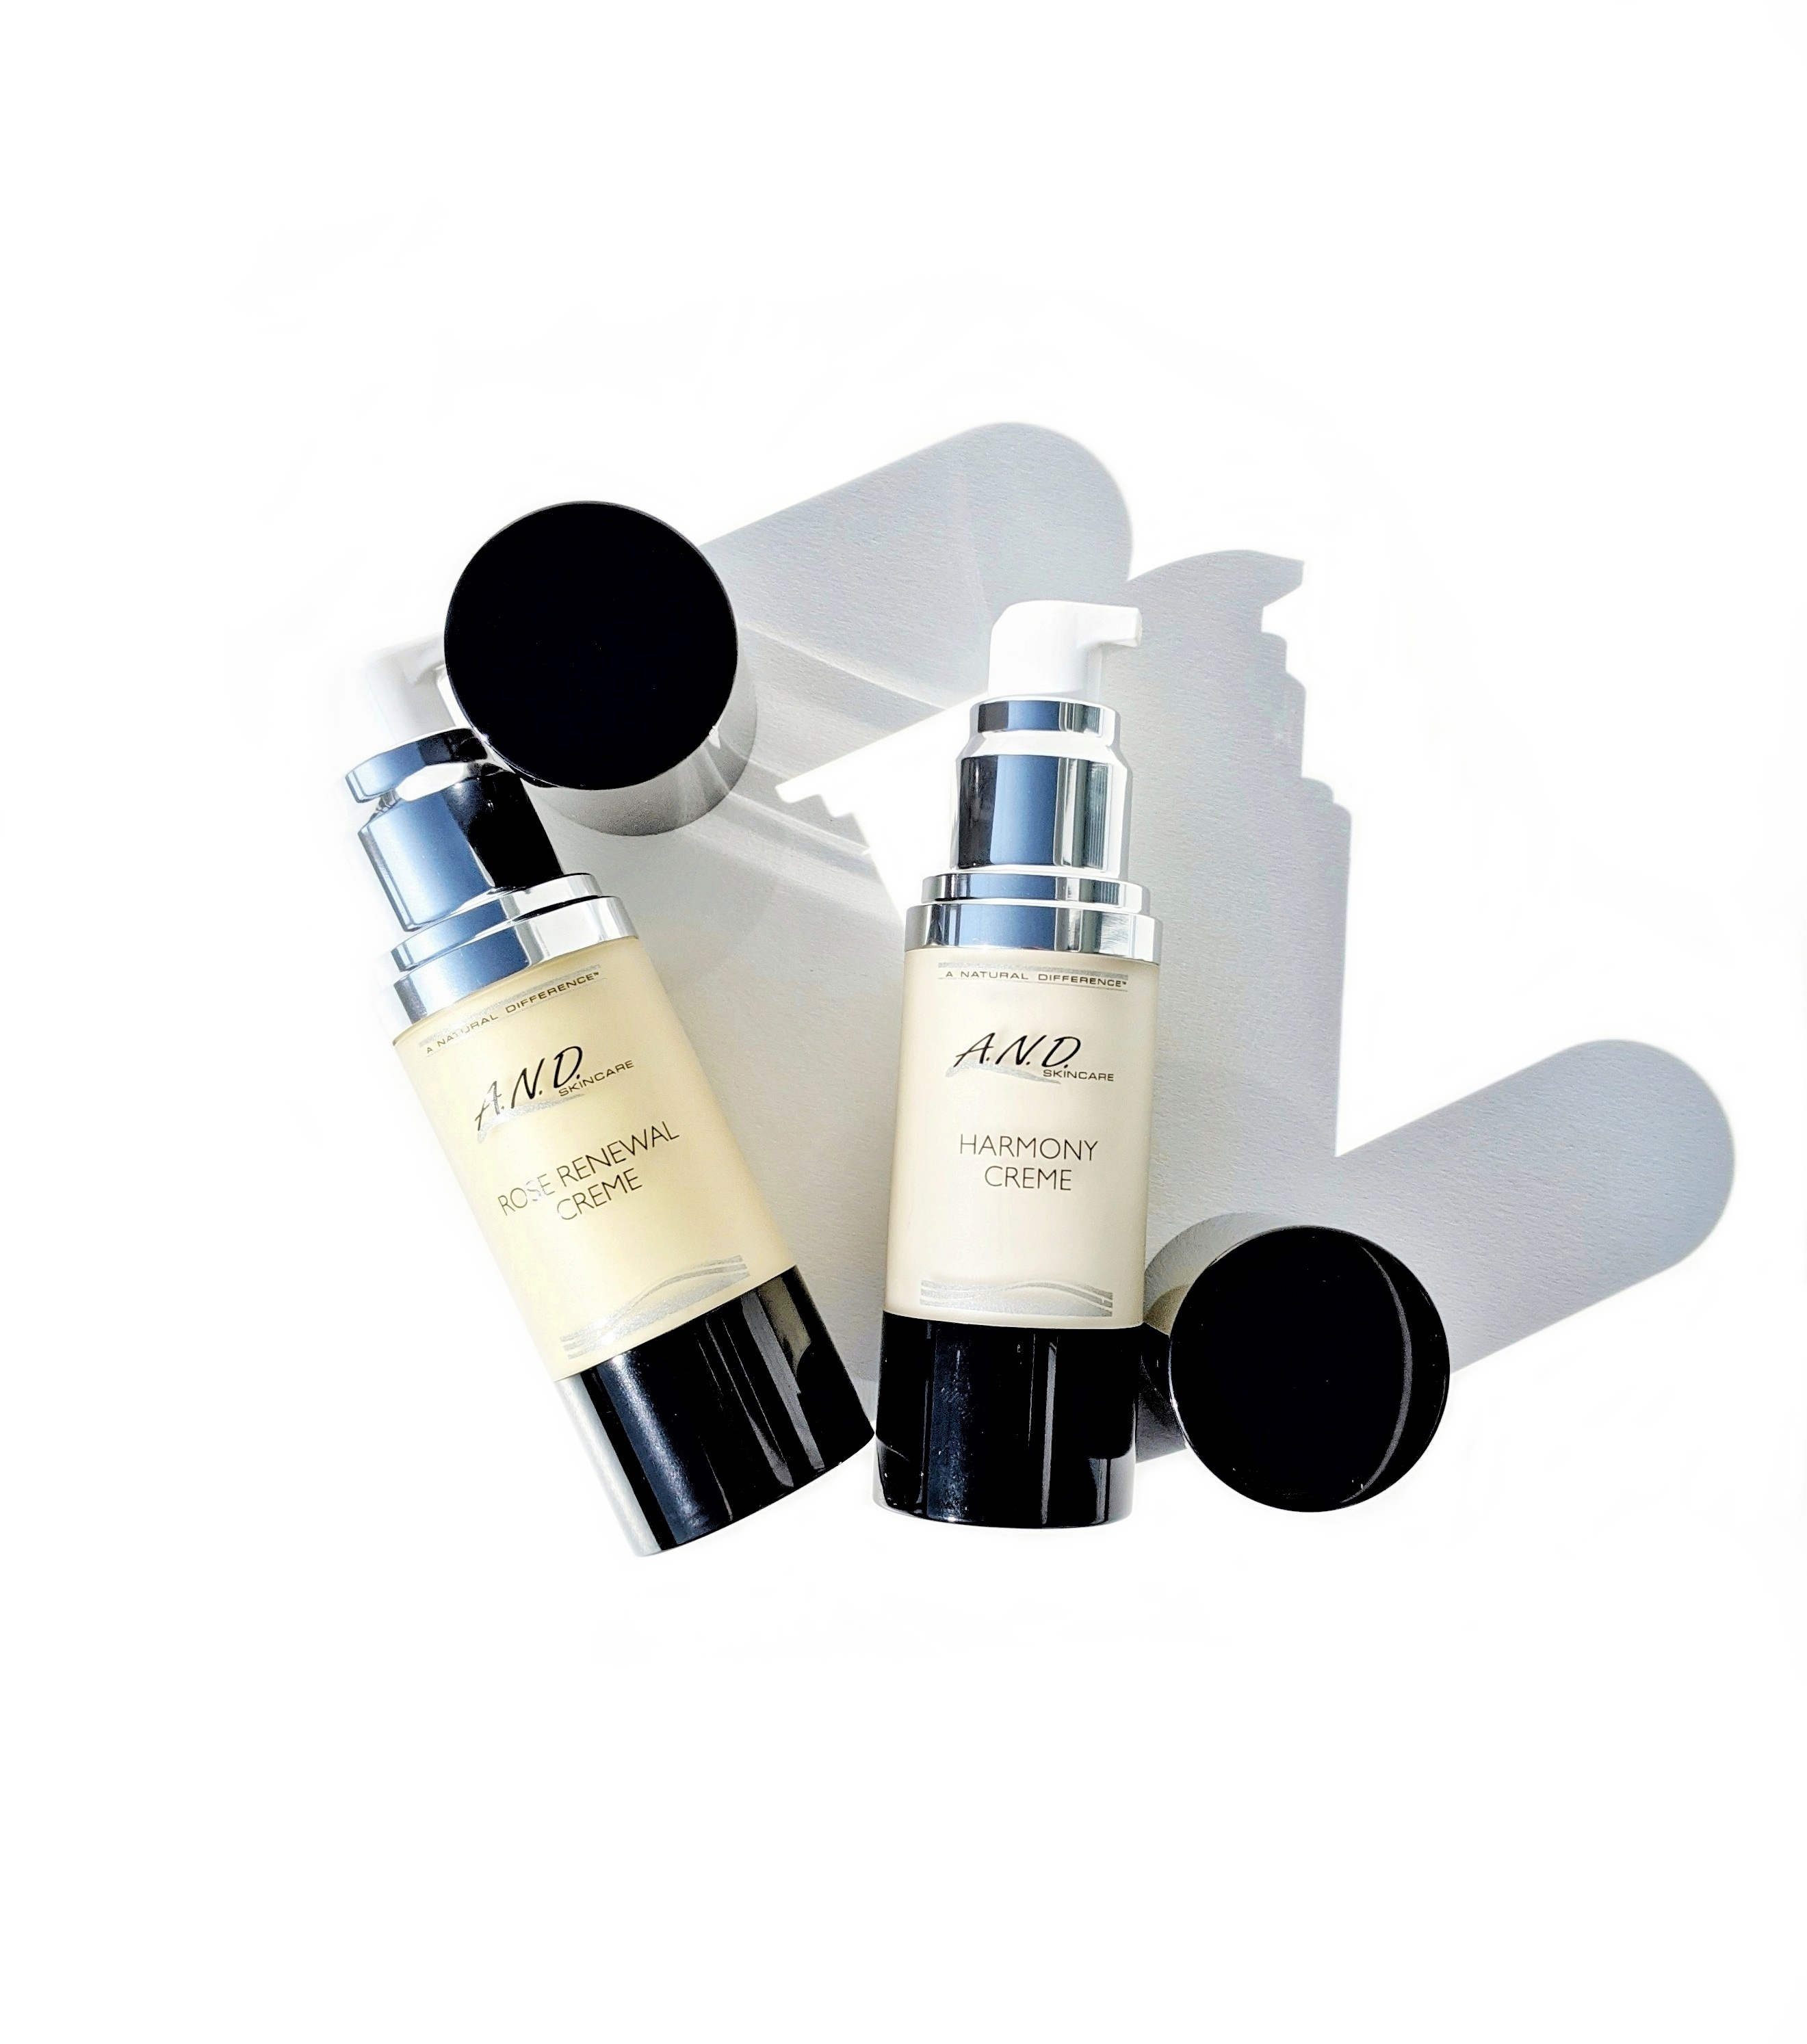 Celebrating 30 Years of High Performance Skincare!